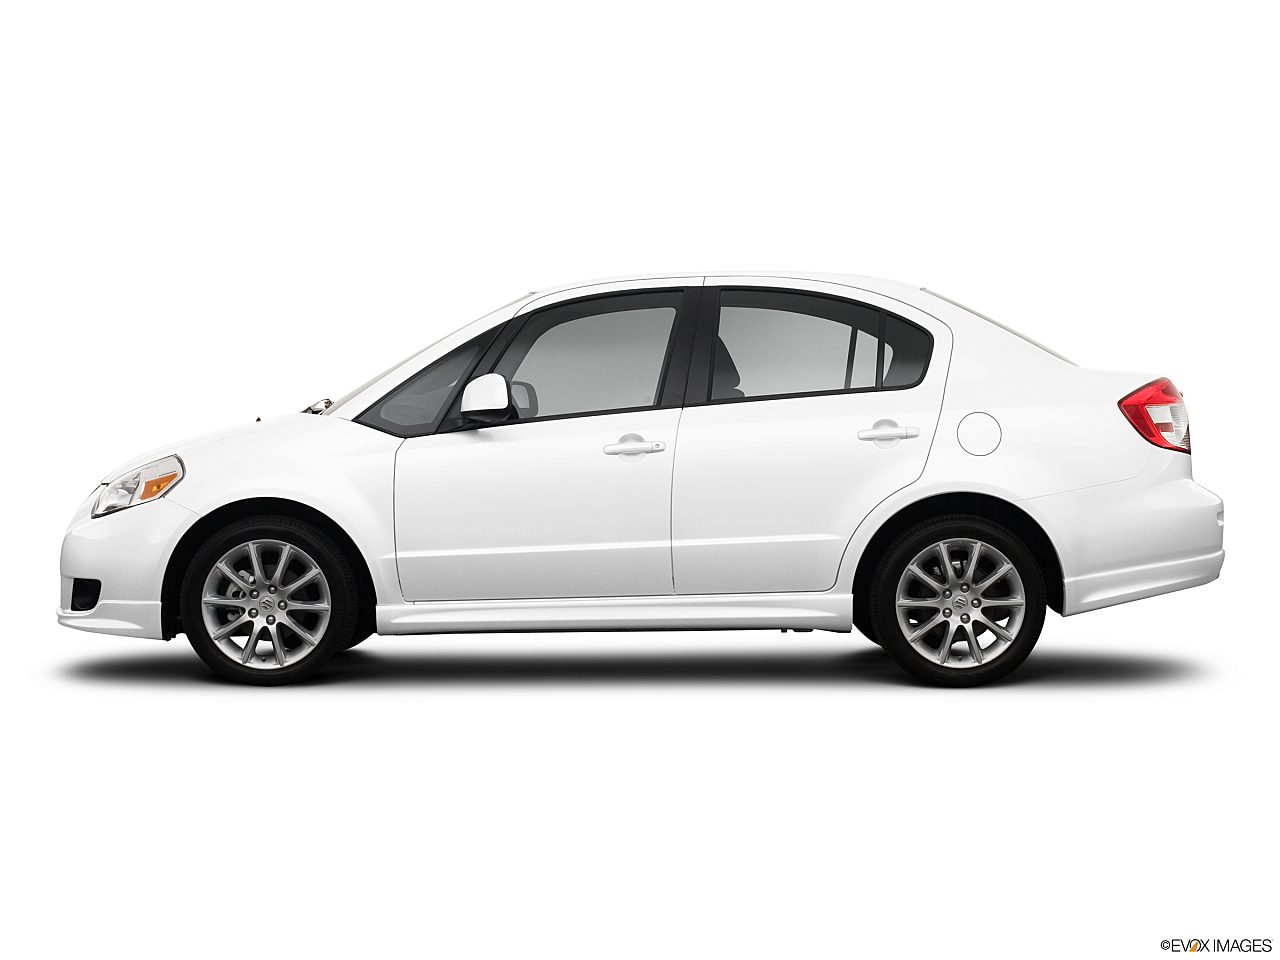 2008 Suzuki Sx4 Sedan Owners Manual 1 Manuals And User Guides Site Fuse Box Base At Auto Wholesalers Of America Orlando Fl Rh Groovecar Com Specs